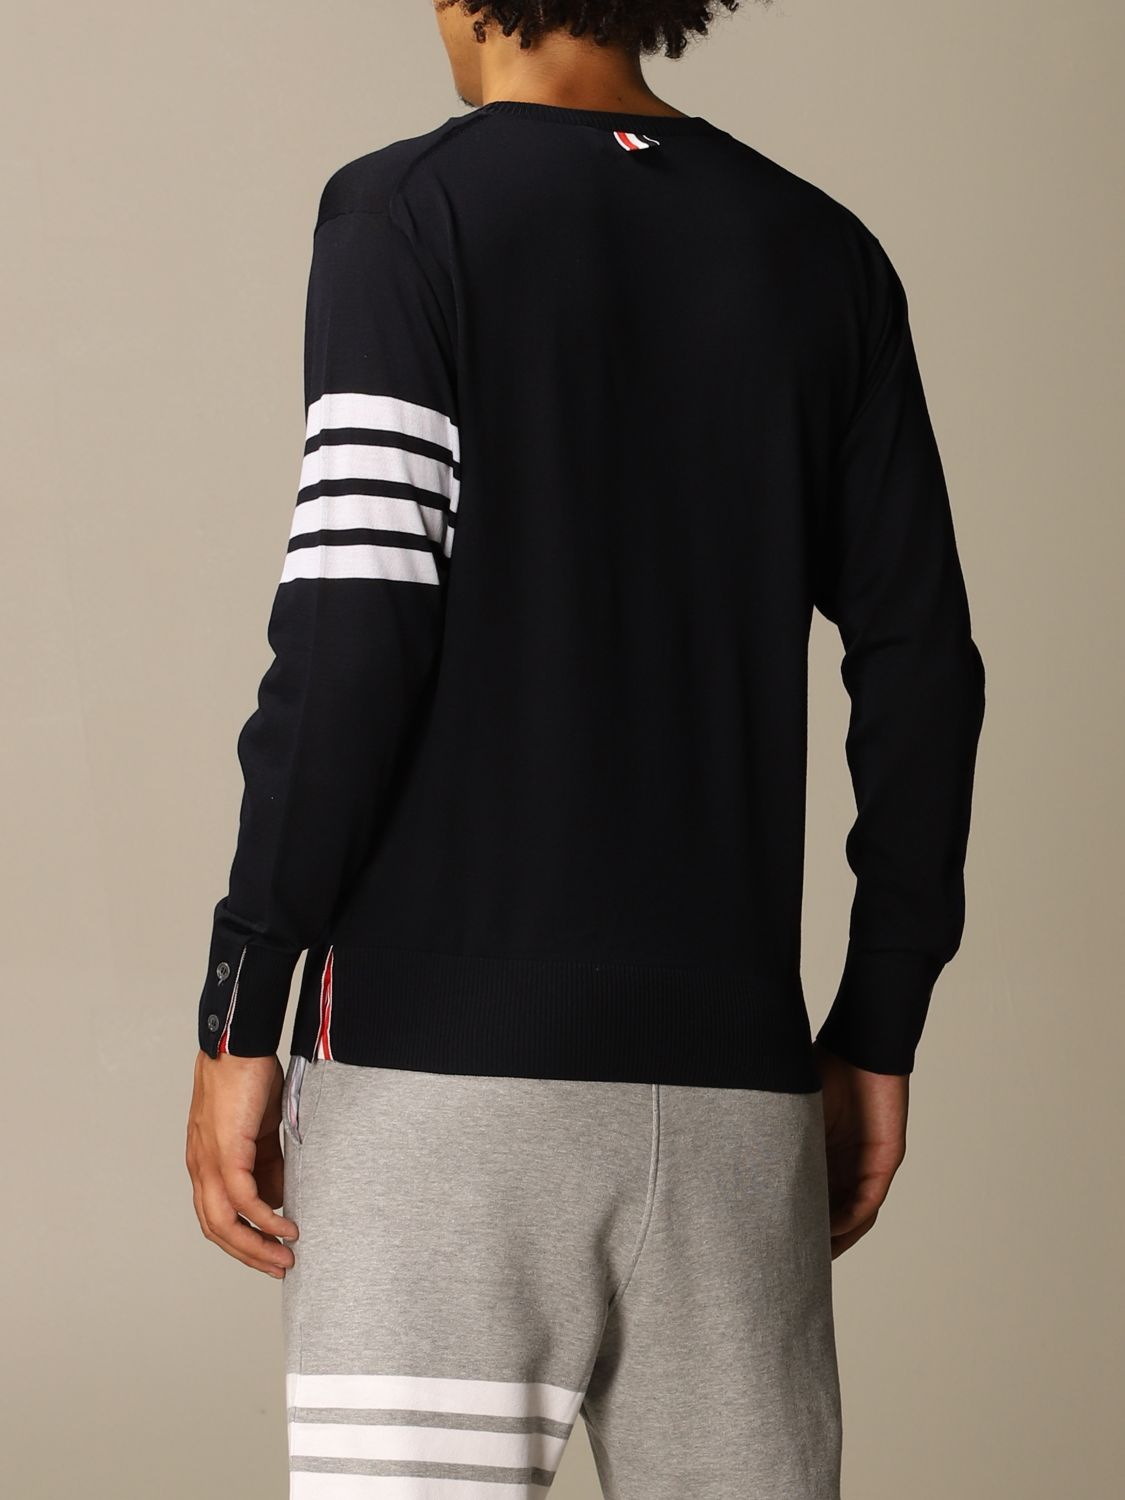 Sweater Thom Browne: Thom Browne pullover in merino wool with bands navy 3